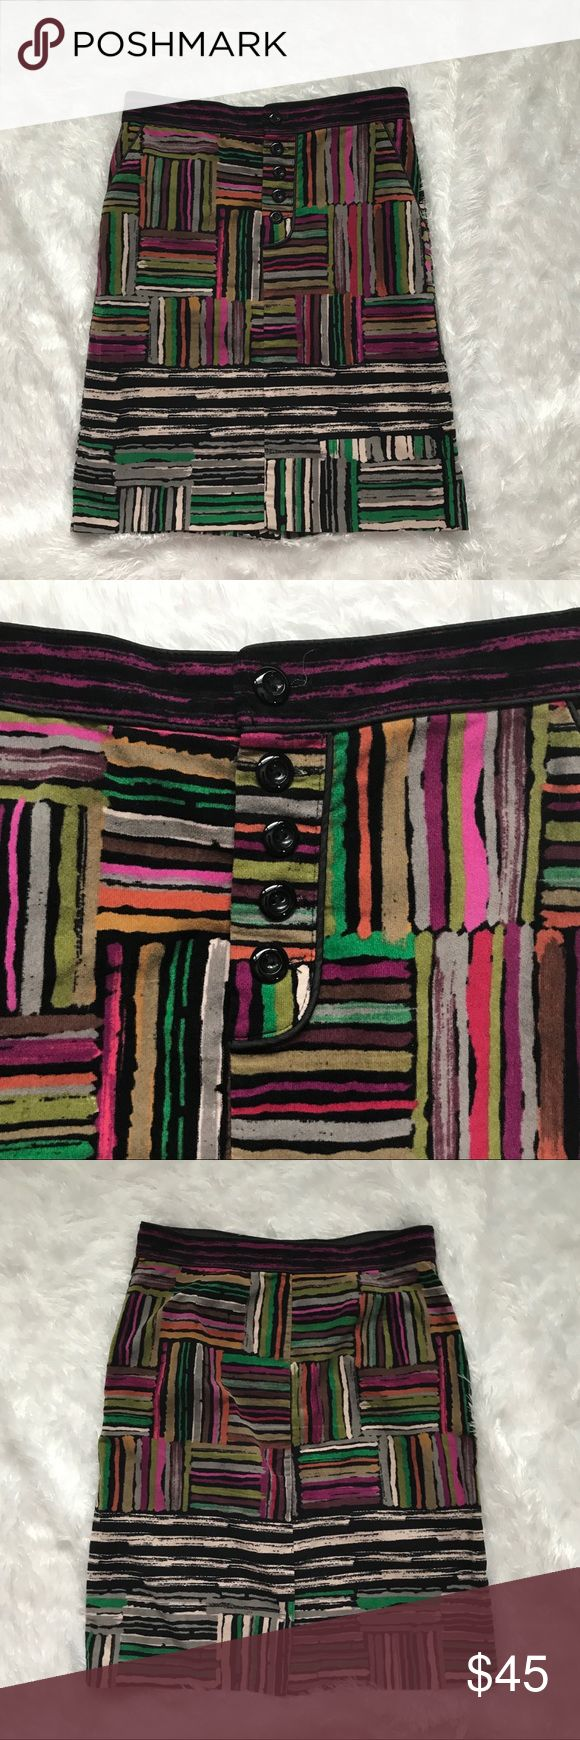 """Odille Anthropologie Velvet Spectrum Skirt sz 2 Pencil skirt in a colorful print. Button front, front pockets, Slit in back.  98% Cotton, 2% Spandex  Flat across waist approx 14.5"""", length approx 21"""", slit approx 6"""" - measurements taken laying flat and unstretched Odille Skirts"""